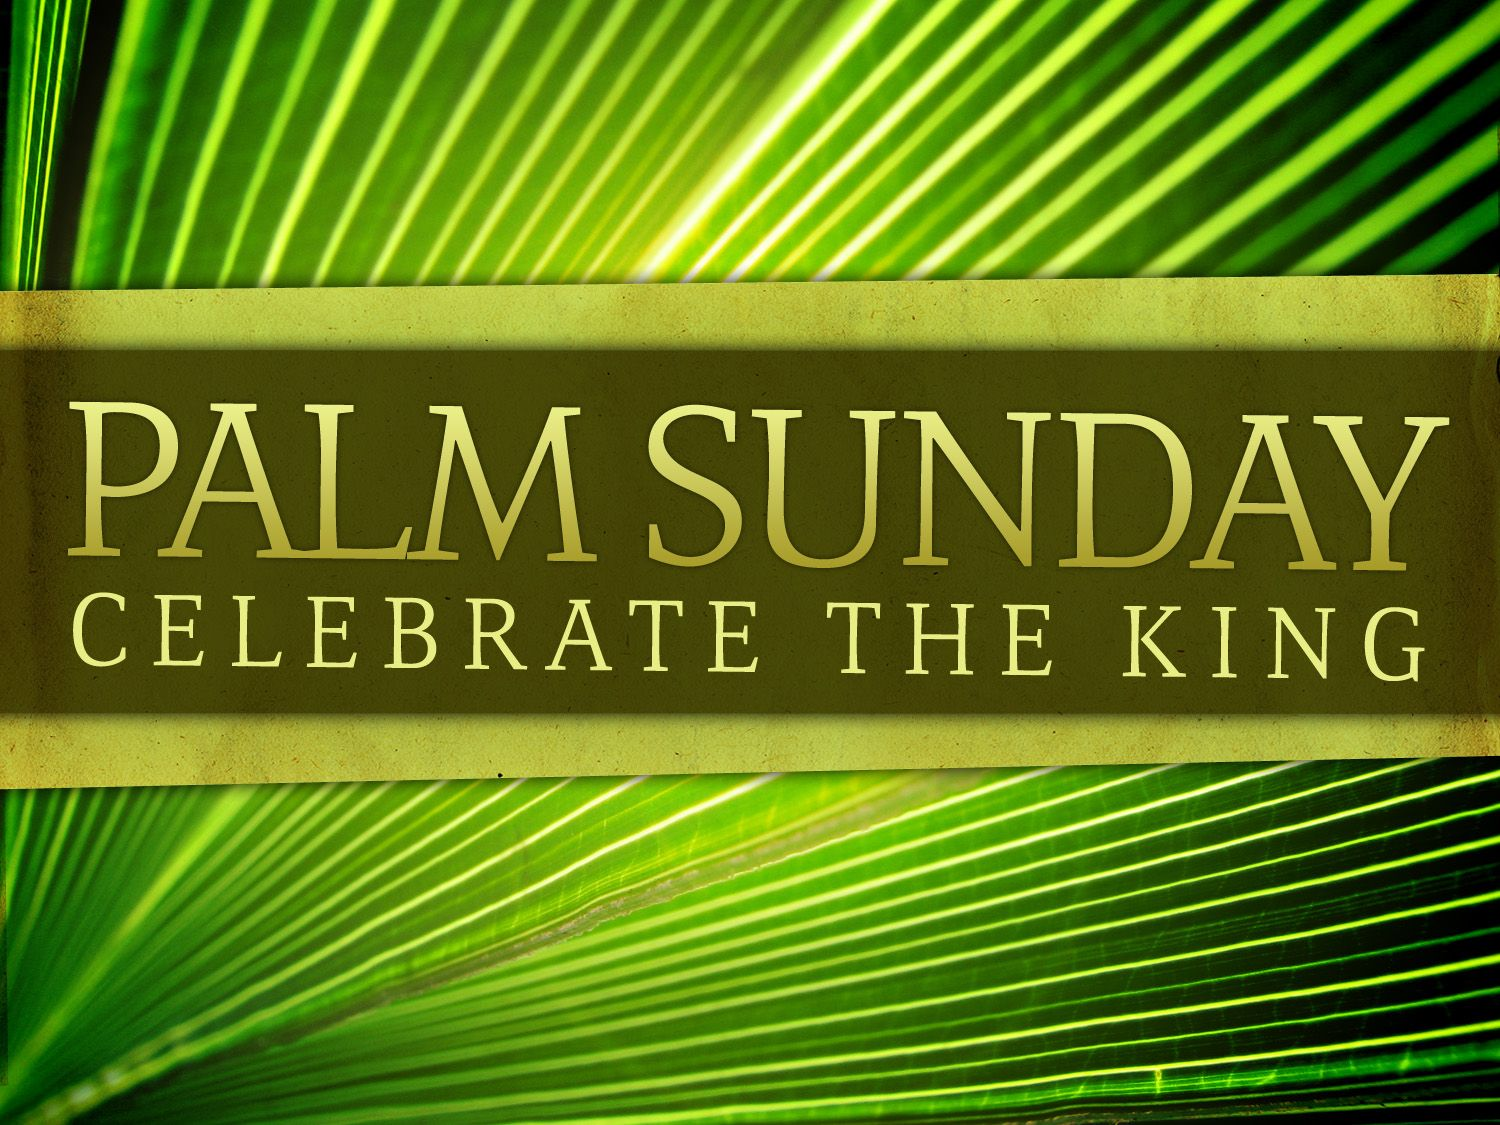 Palm Sunday Pictures And Images